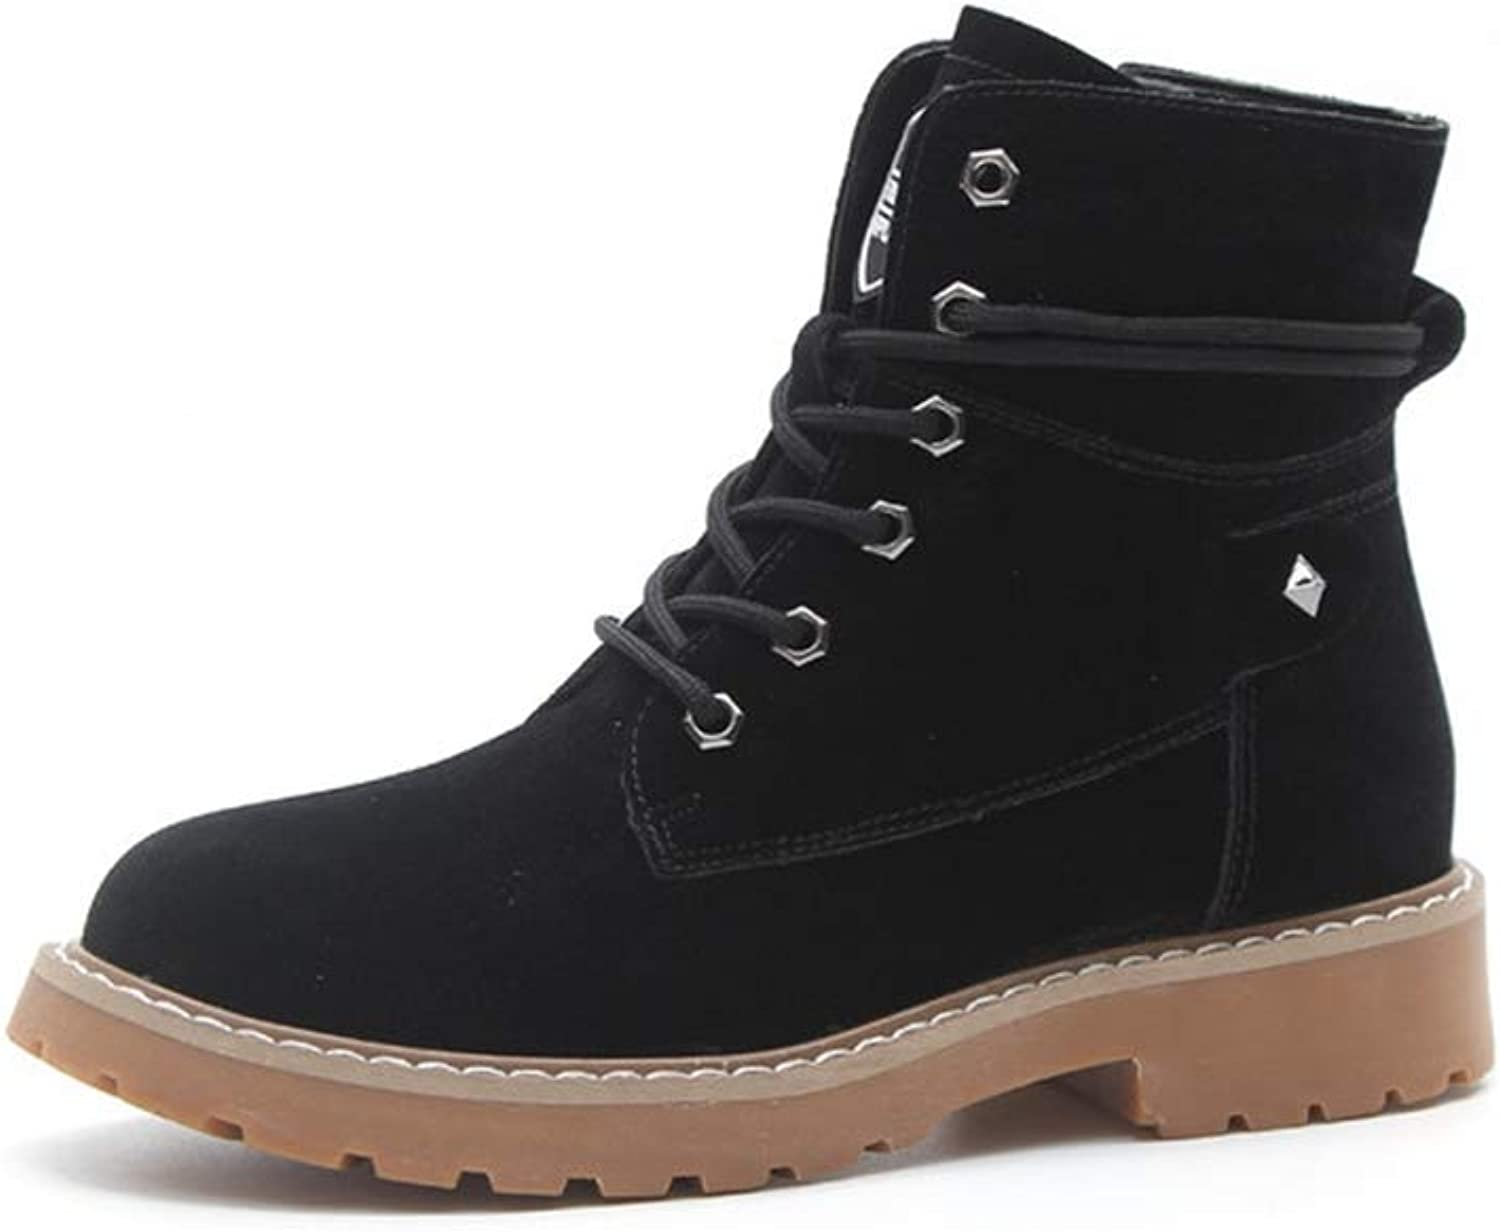 Kyle Walsh Pa Women's New Martin Boots British Boots, Female Students Autumn high Help Plus Velvet Warm Boots